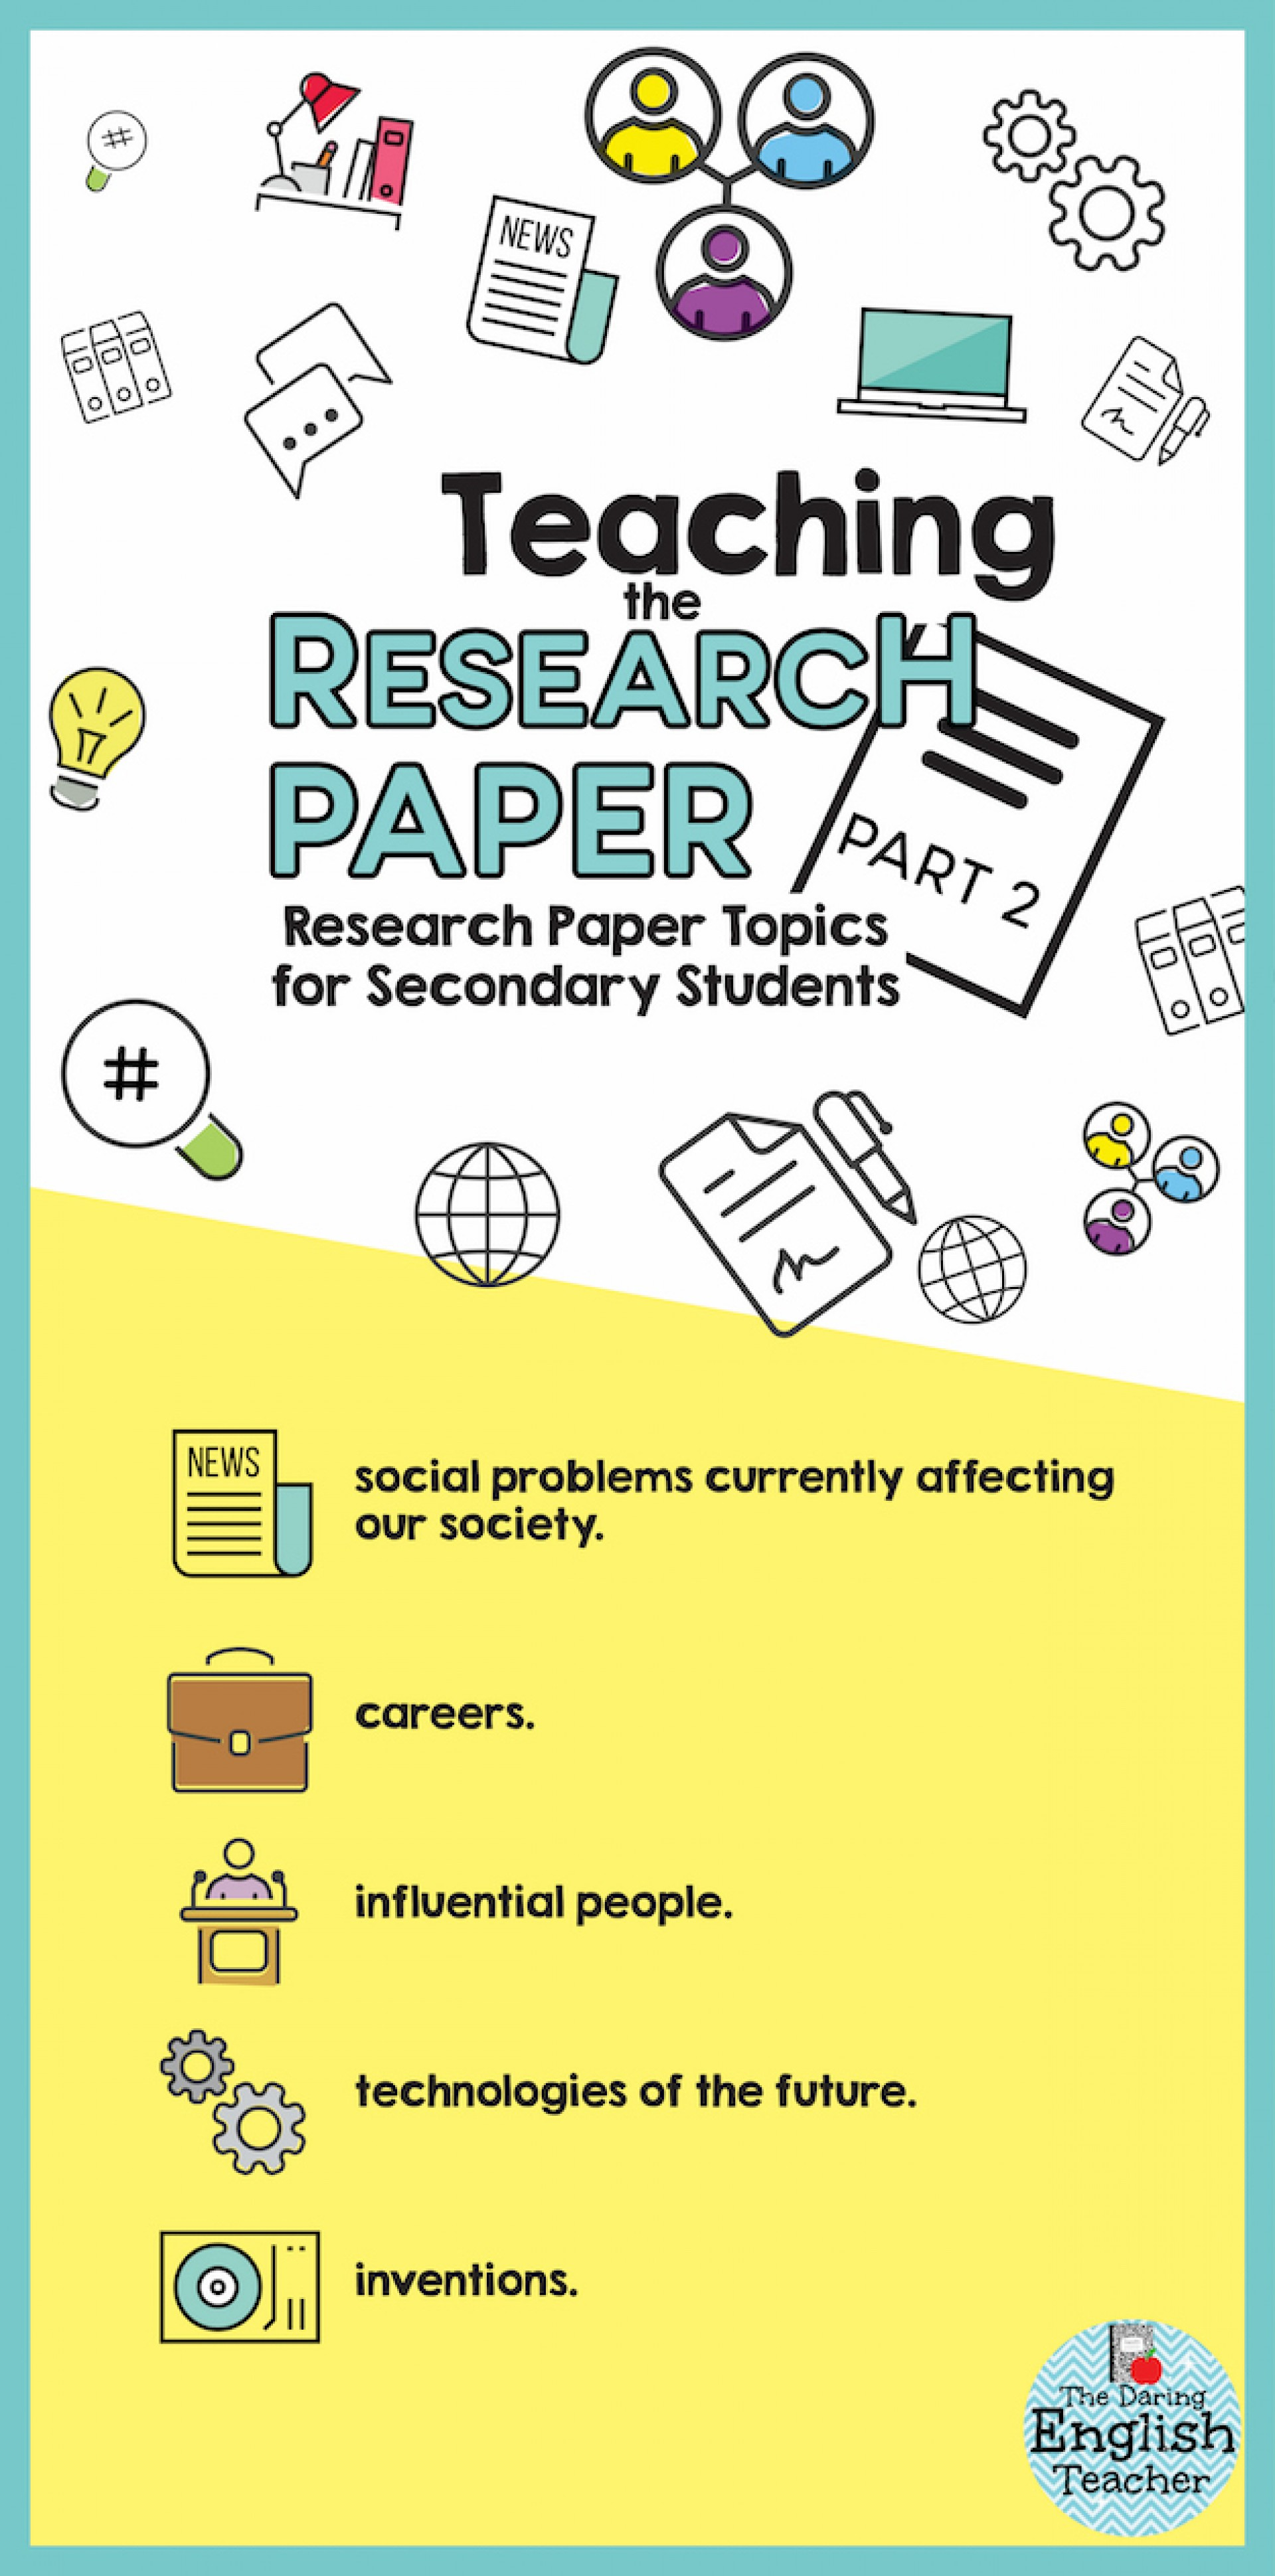 006 Research Paper Infographic2bp22b2 Topics For Magnificent English Linguistics Pdf 102 1920